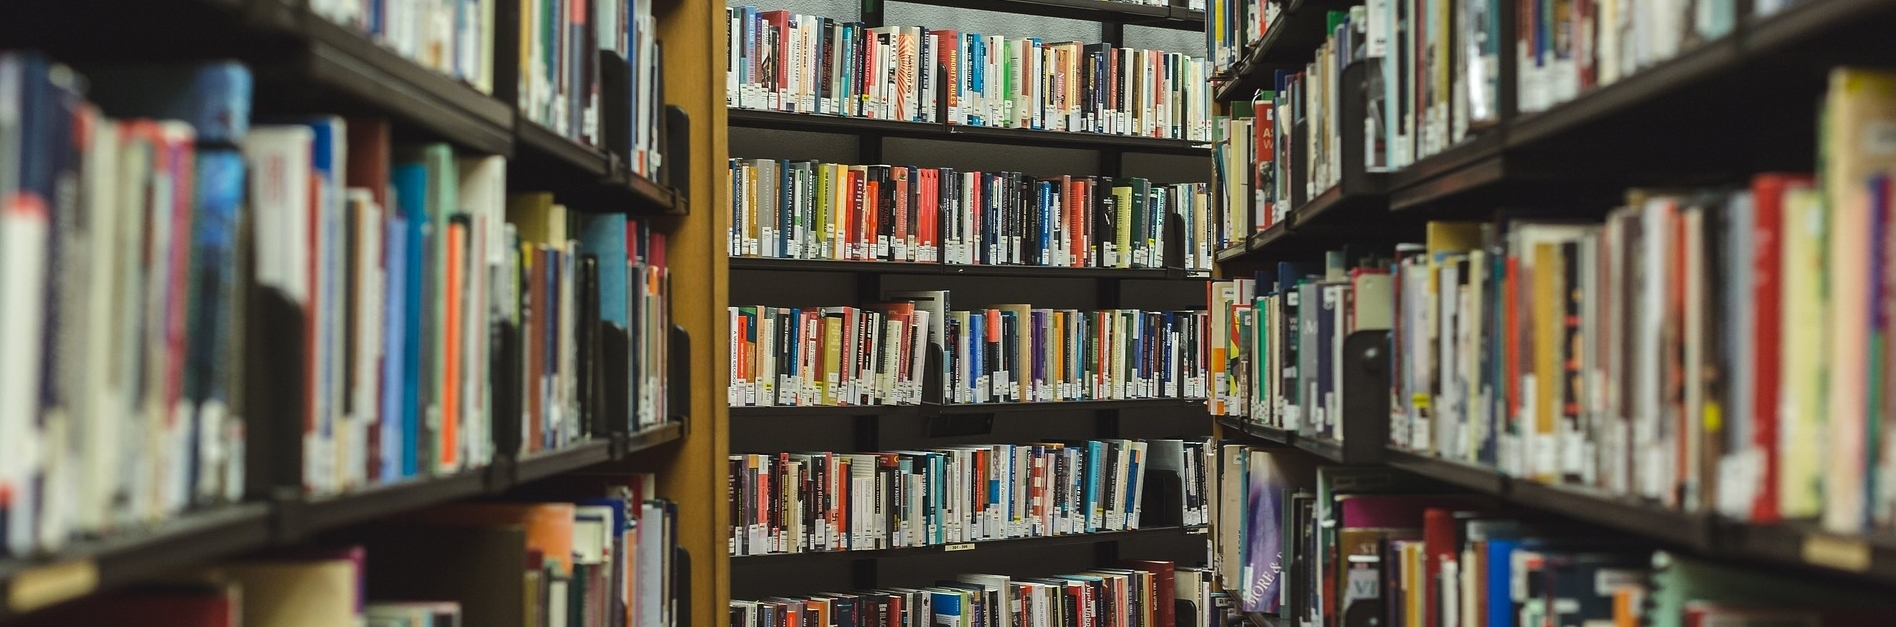 Image of bookshelves crammed with books.